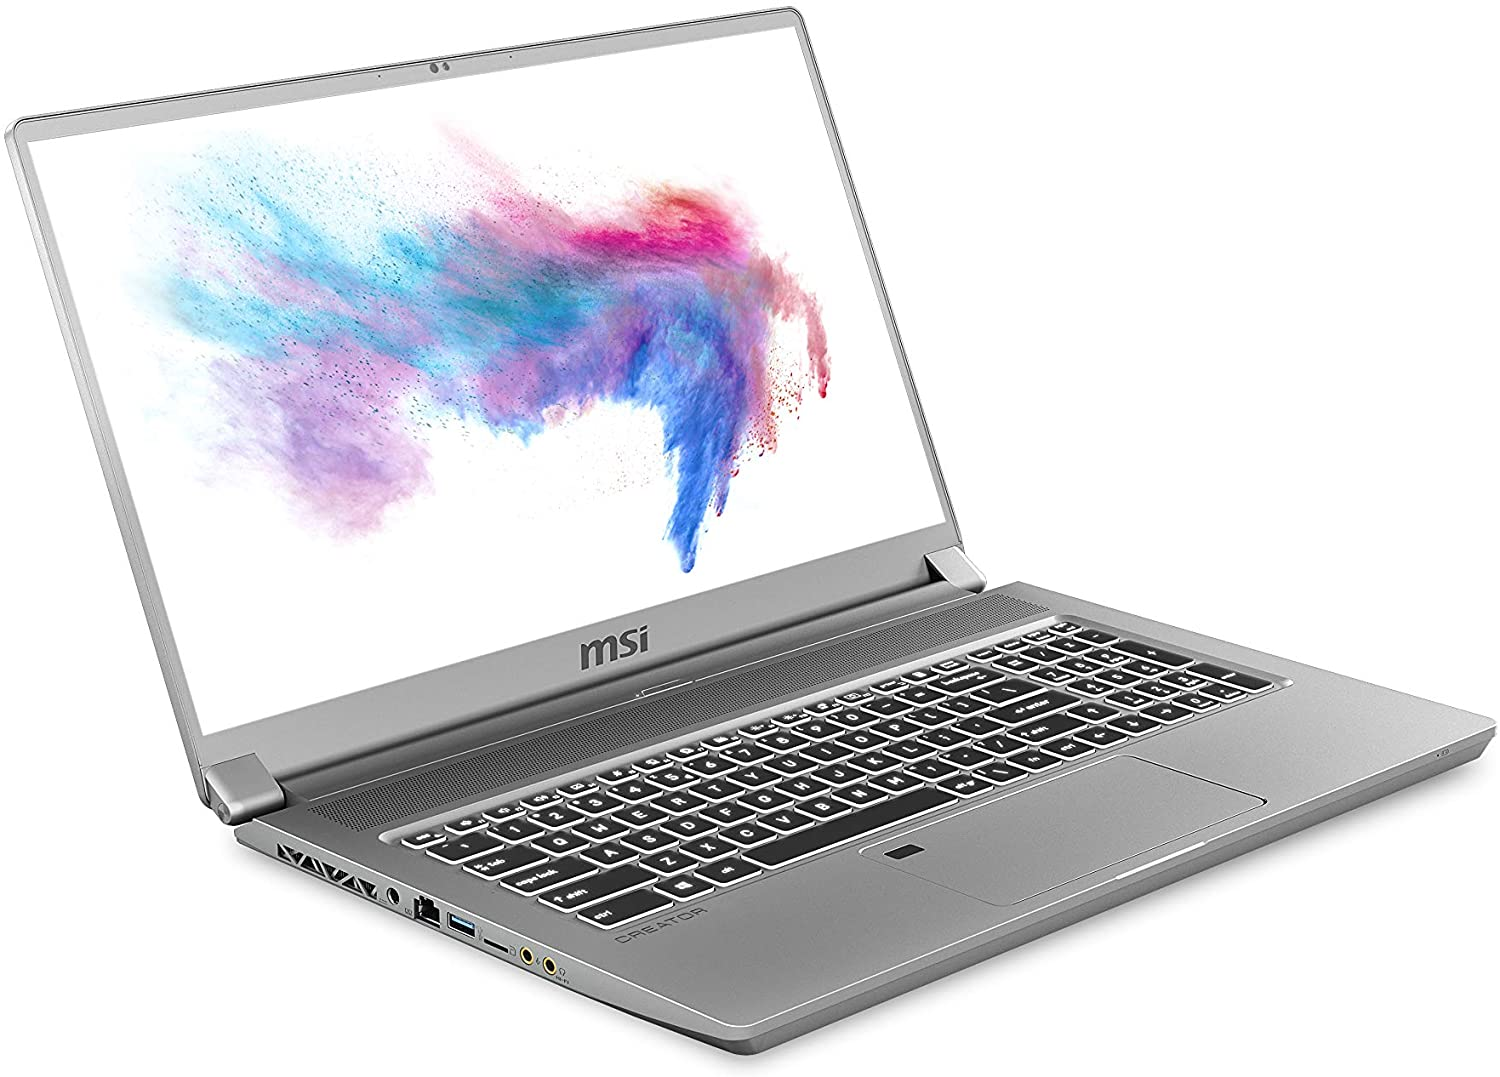 "MSI Creator 17 A10SGS-252 17. 3"" UHD 4K HDR1000 Mini LED Creator Laptop Intel Core i7-10875H RTX 2080 Super 32GB 2TB NVMe SSD Win10PRO VR Ready"